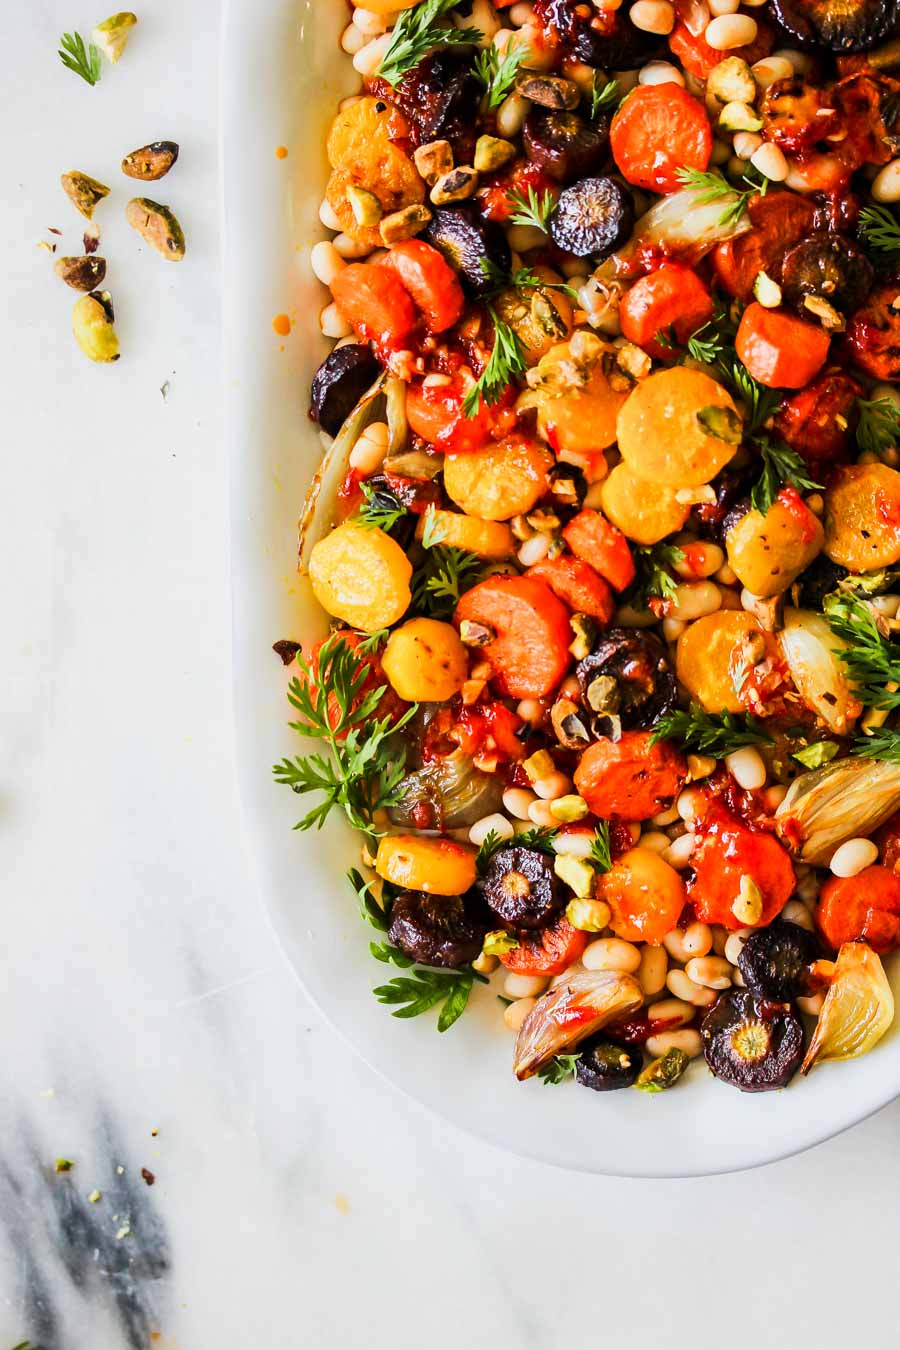 Roasted Carrot and White Bean Salad with Apricot-Harissa